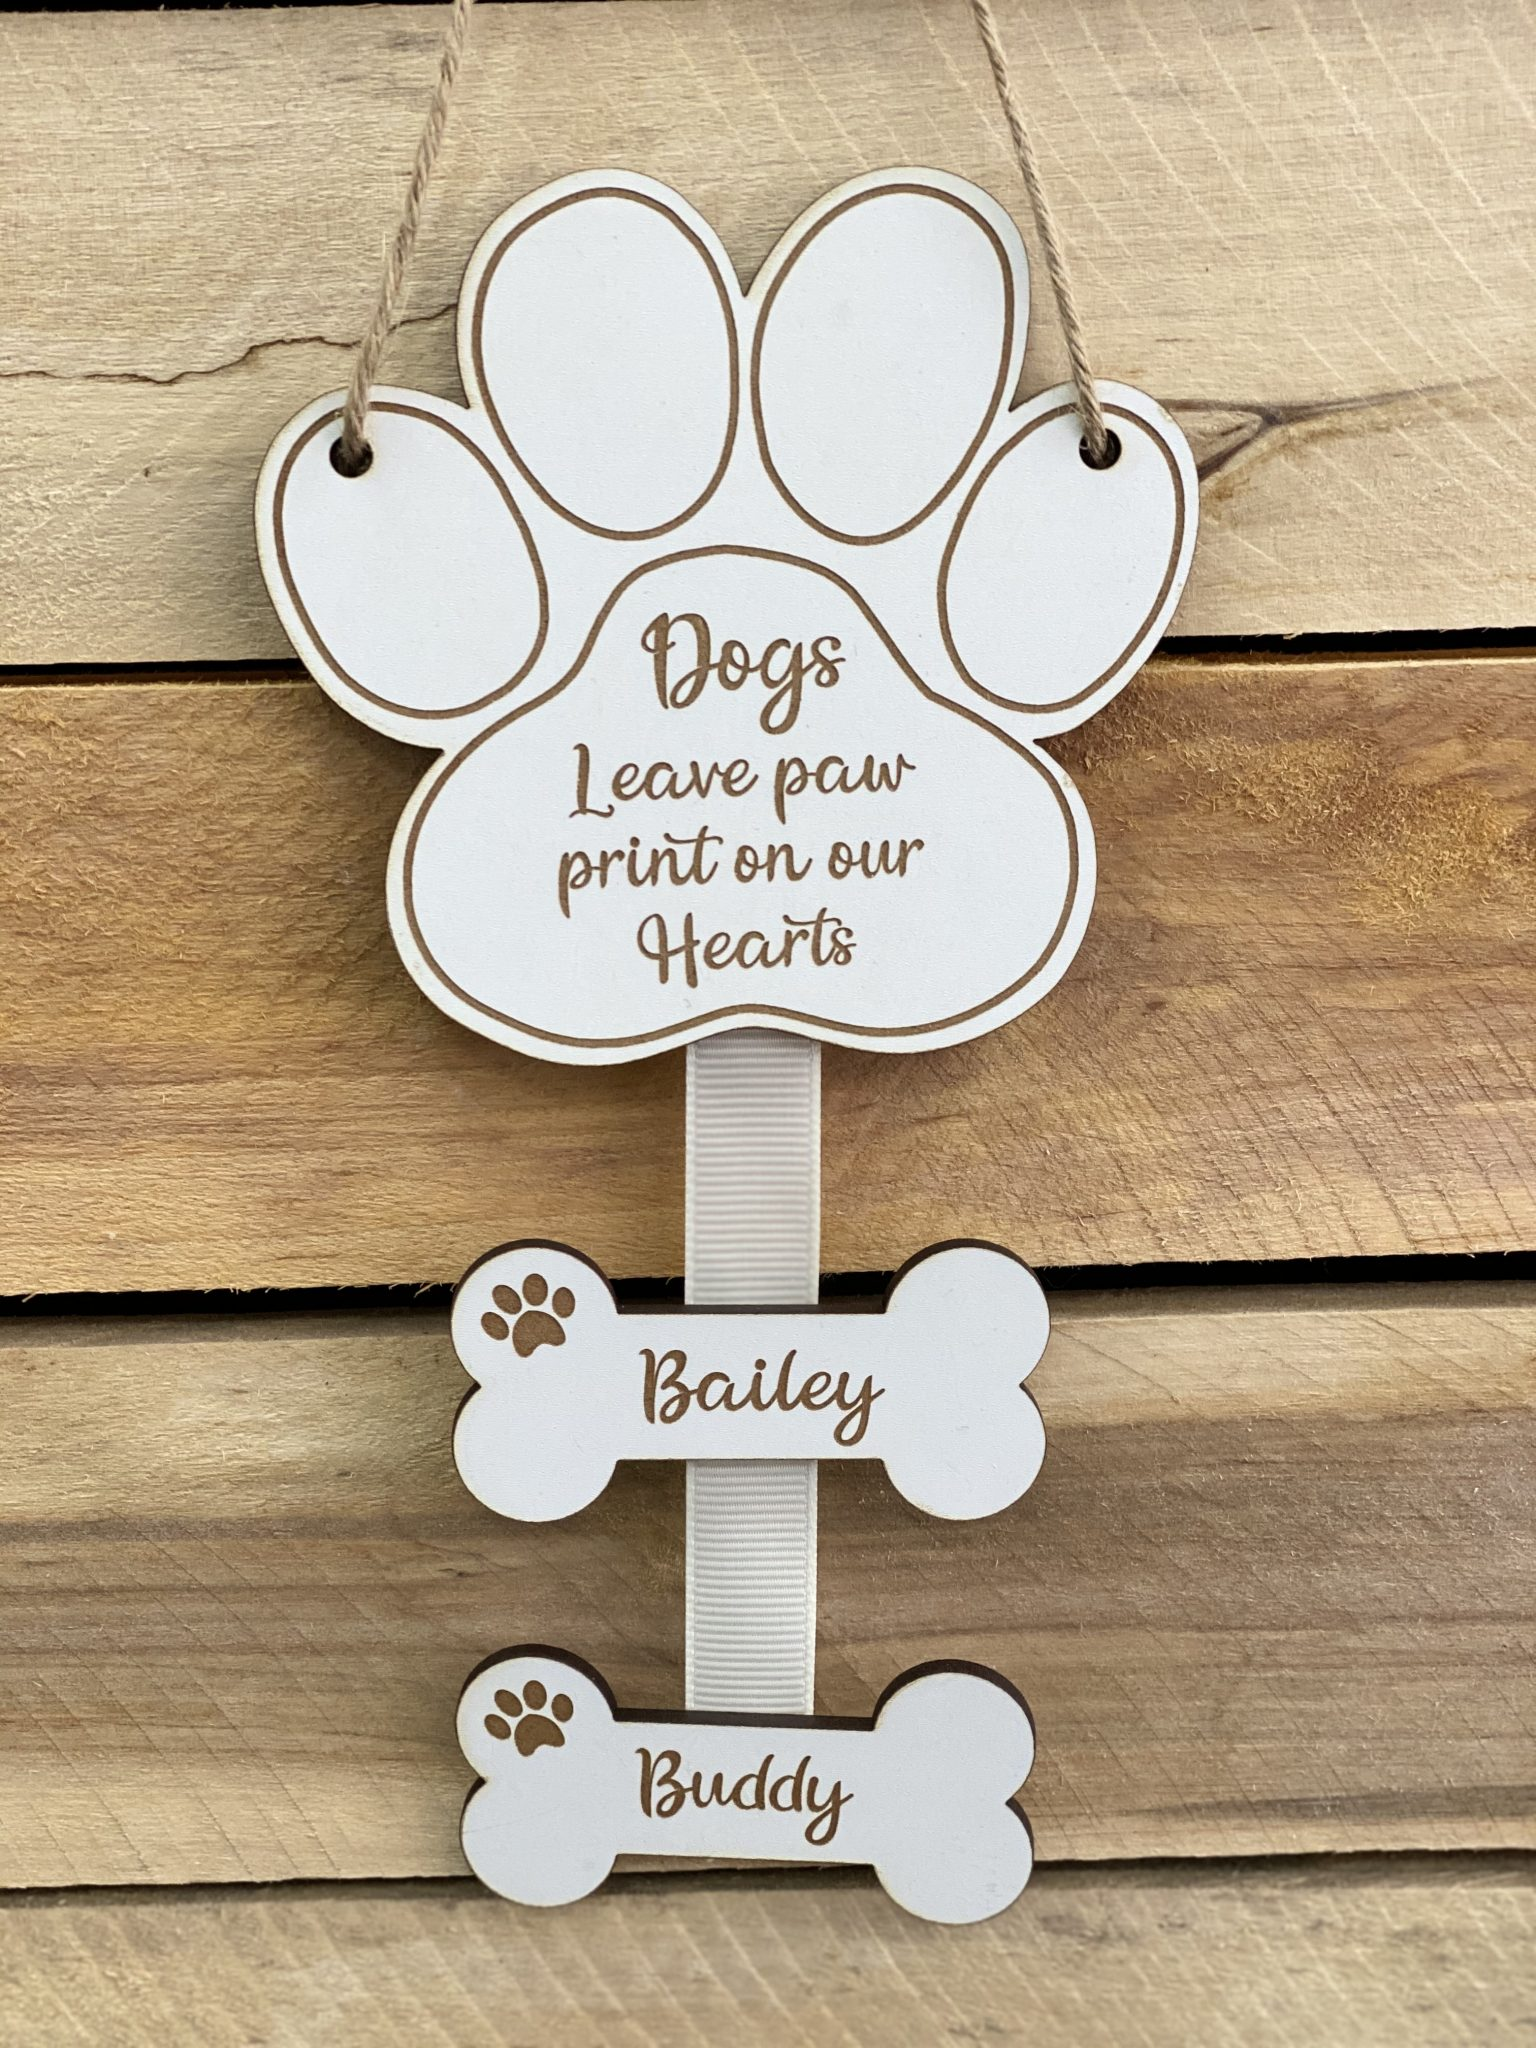 Little Gifts With Love - Personalised White, Dogs leave paw prints on our hearts, Pet memorial hanging sign